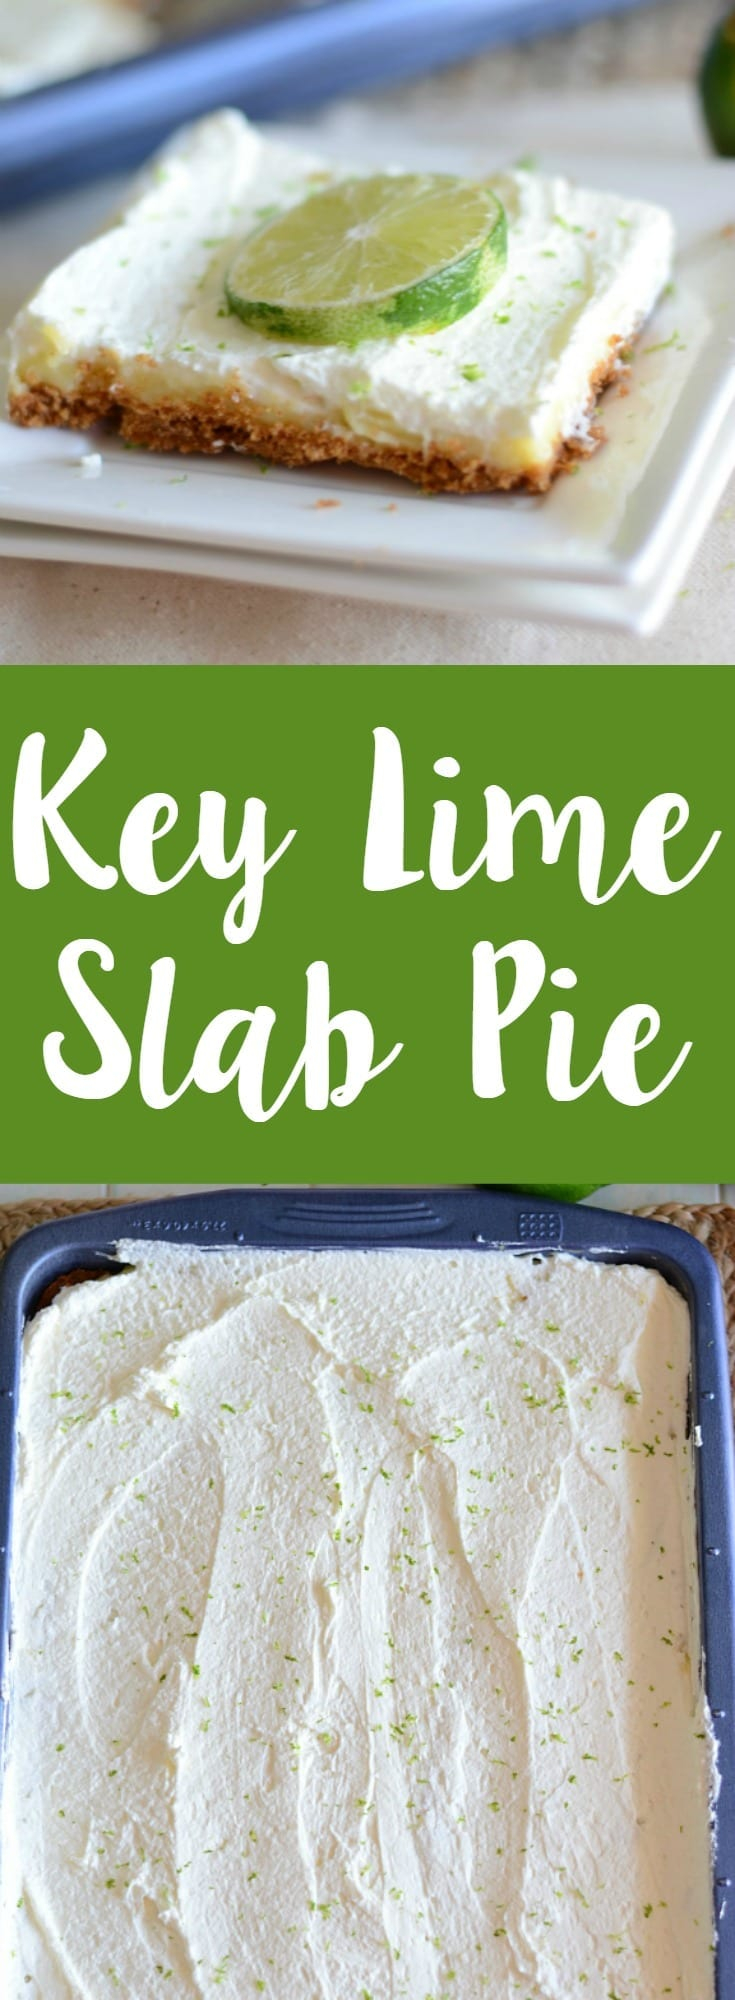 Homemade key lime slab pie!  You are going to love how easy this slab pie is to make!